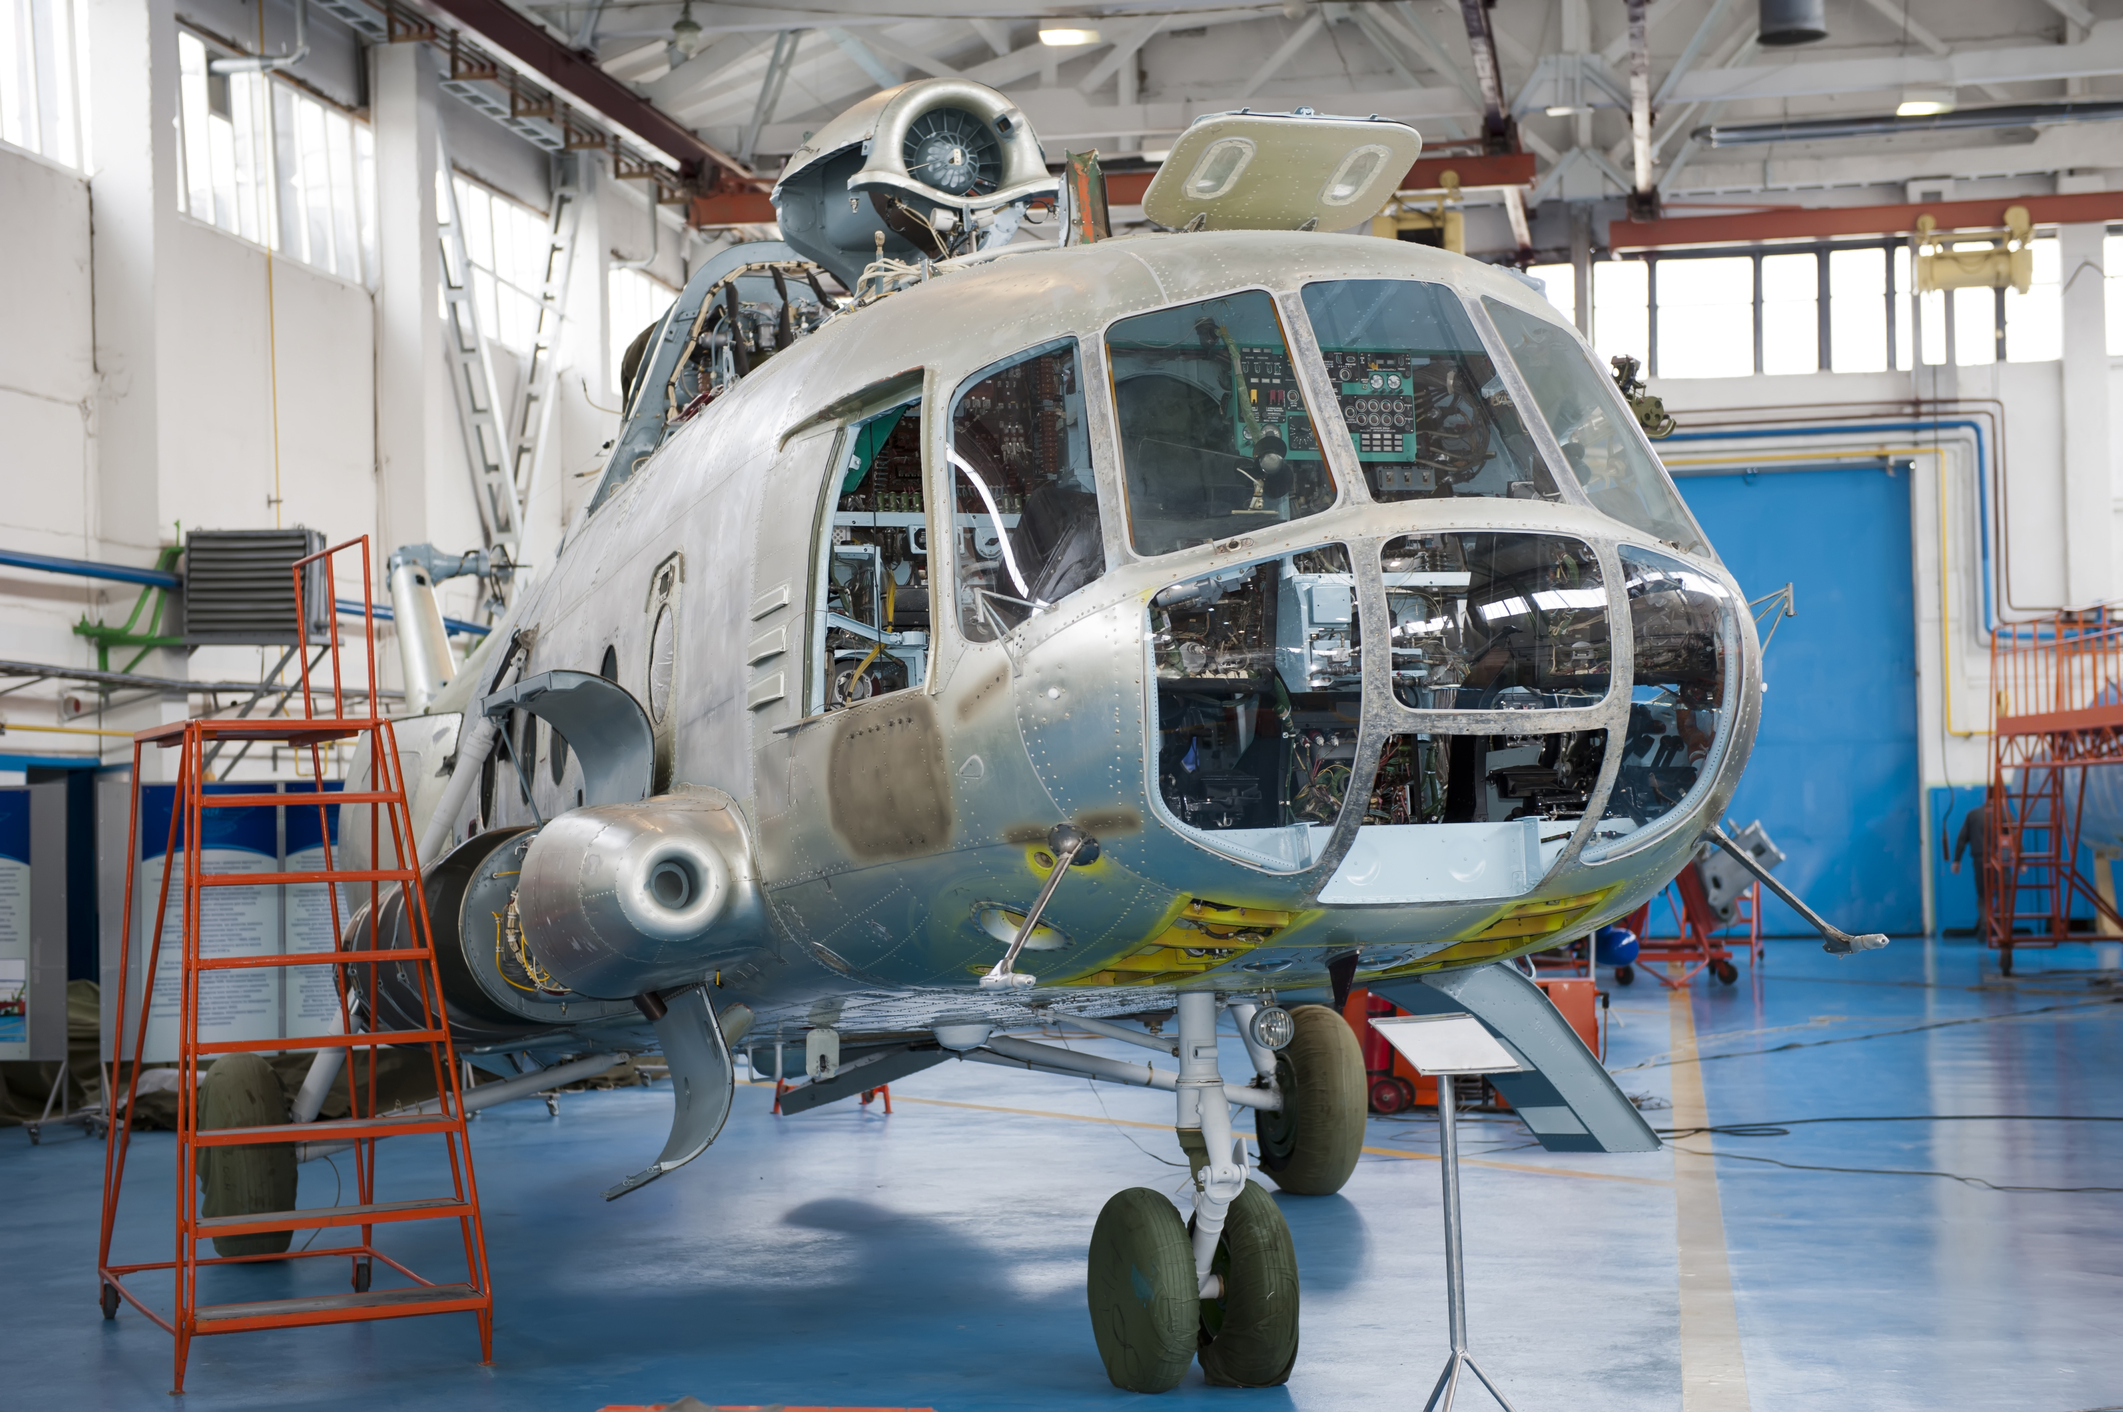 Repair of helicopters